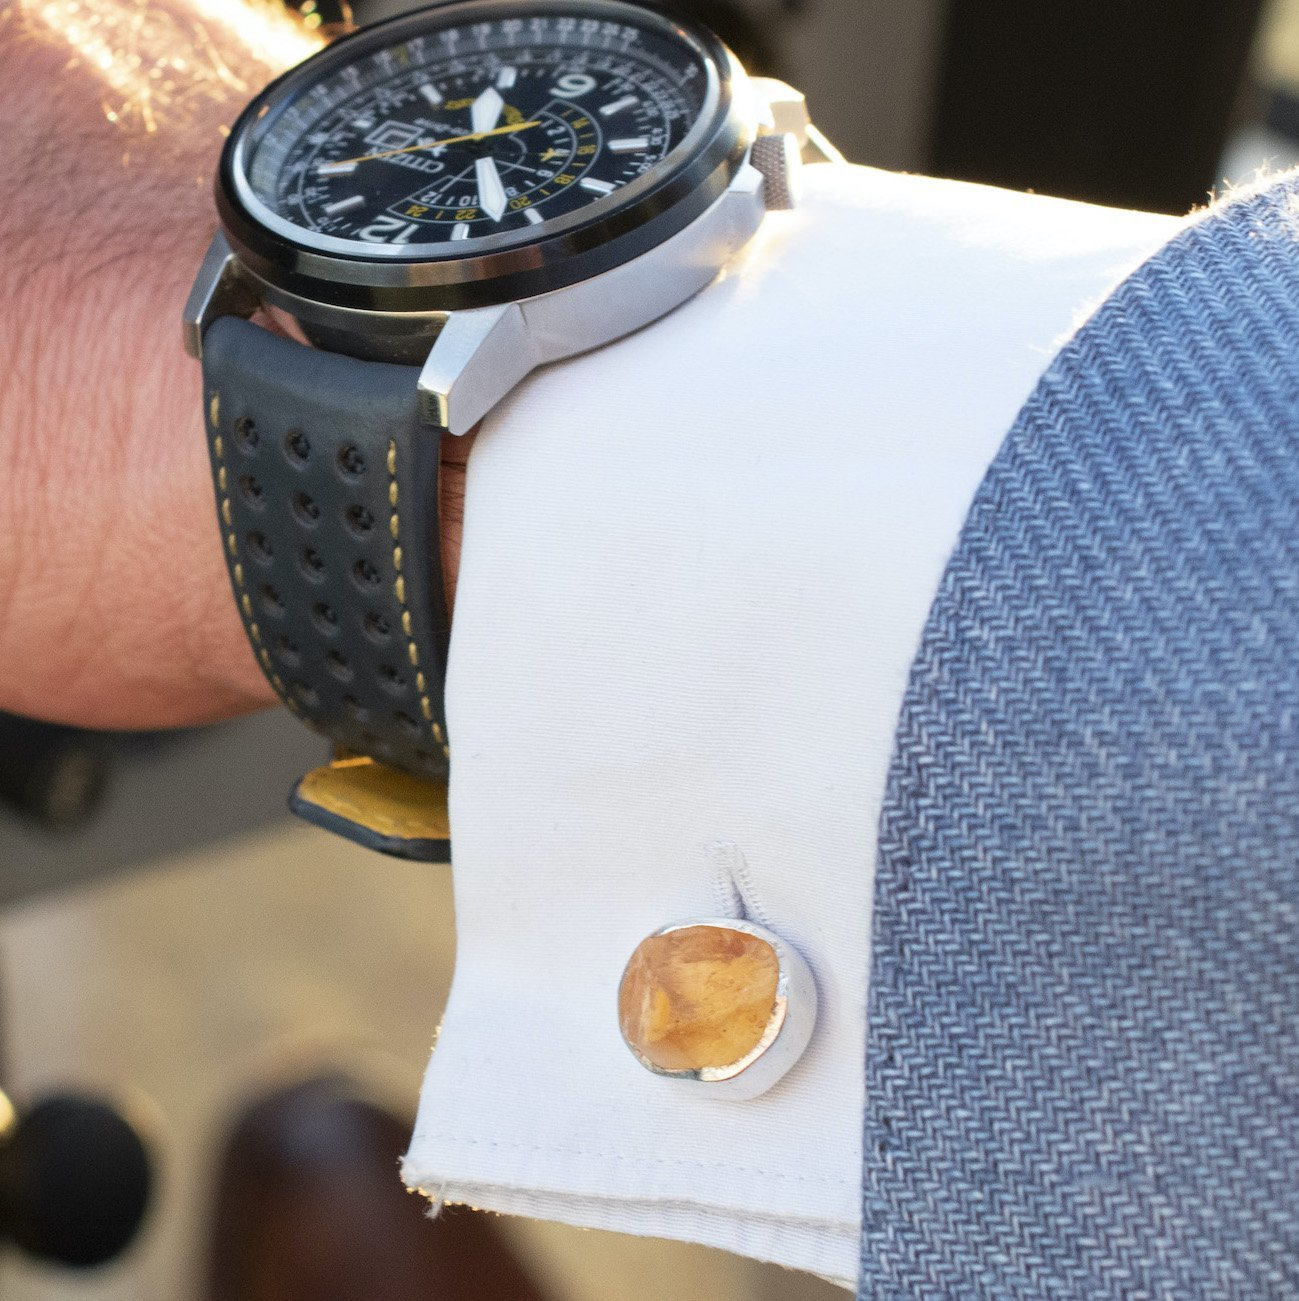 'Hustle' Citrine Cufflinks